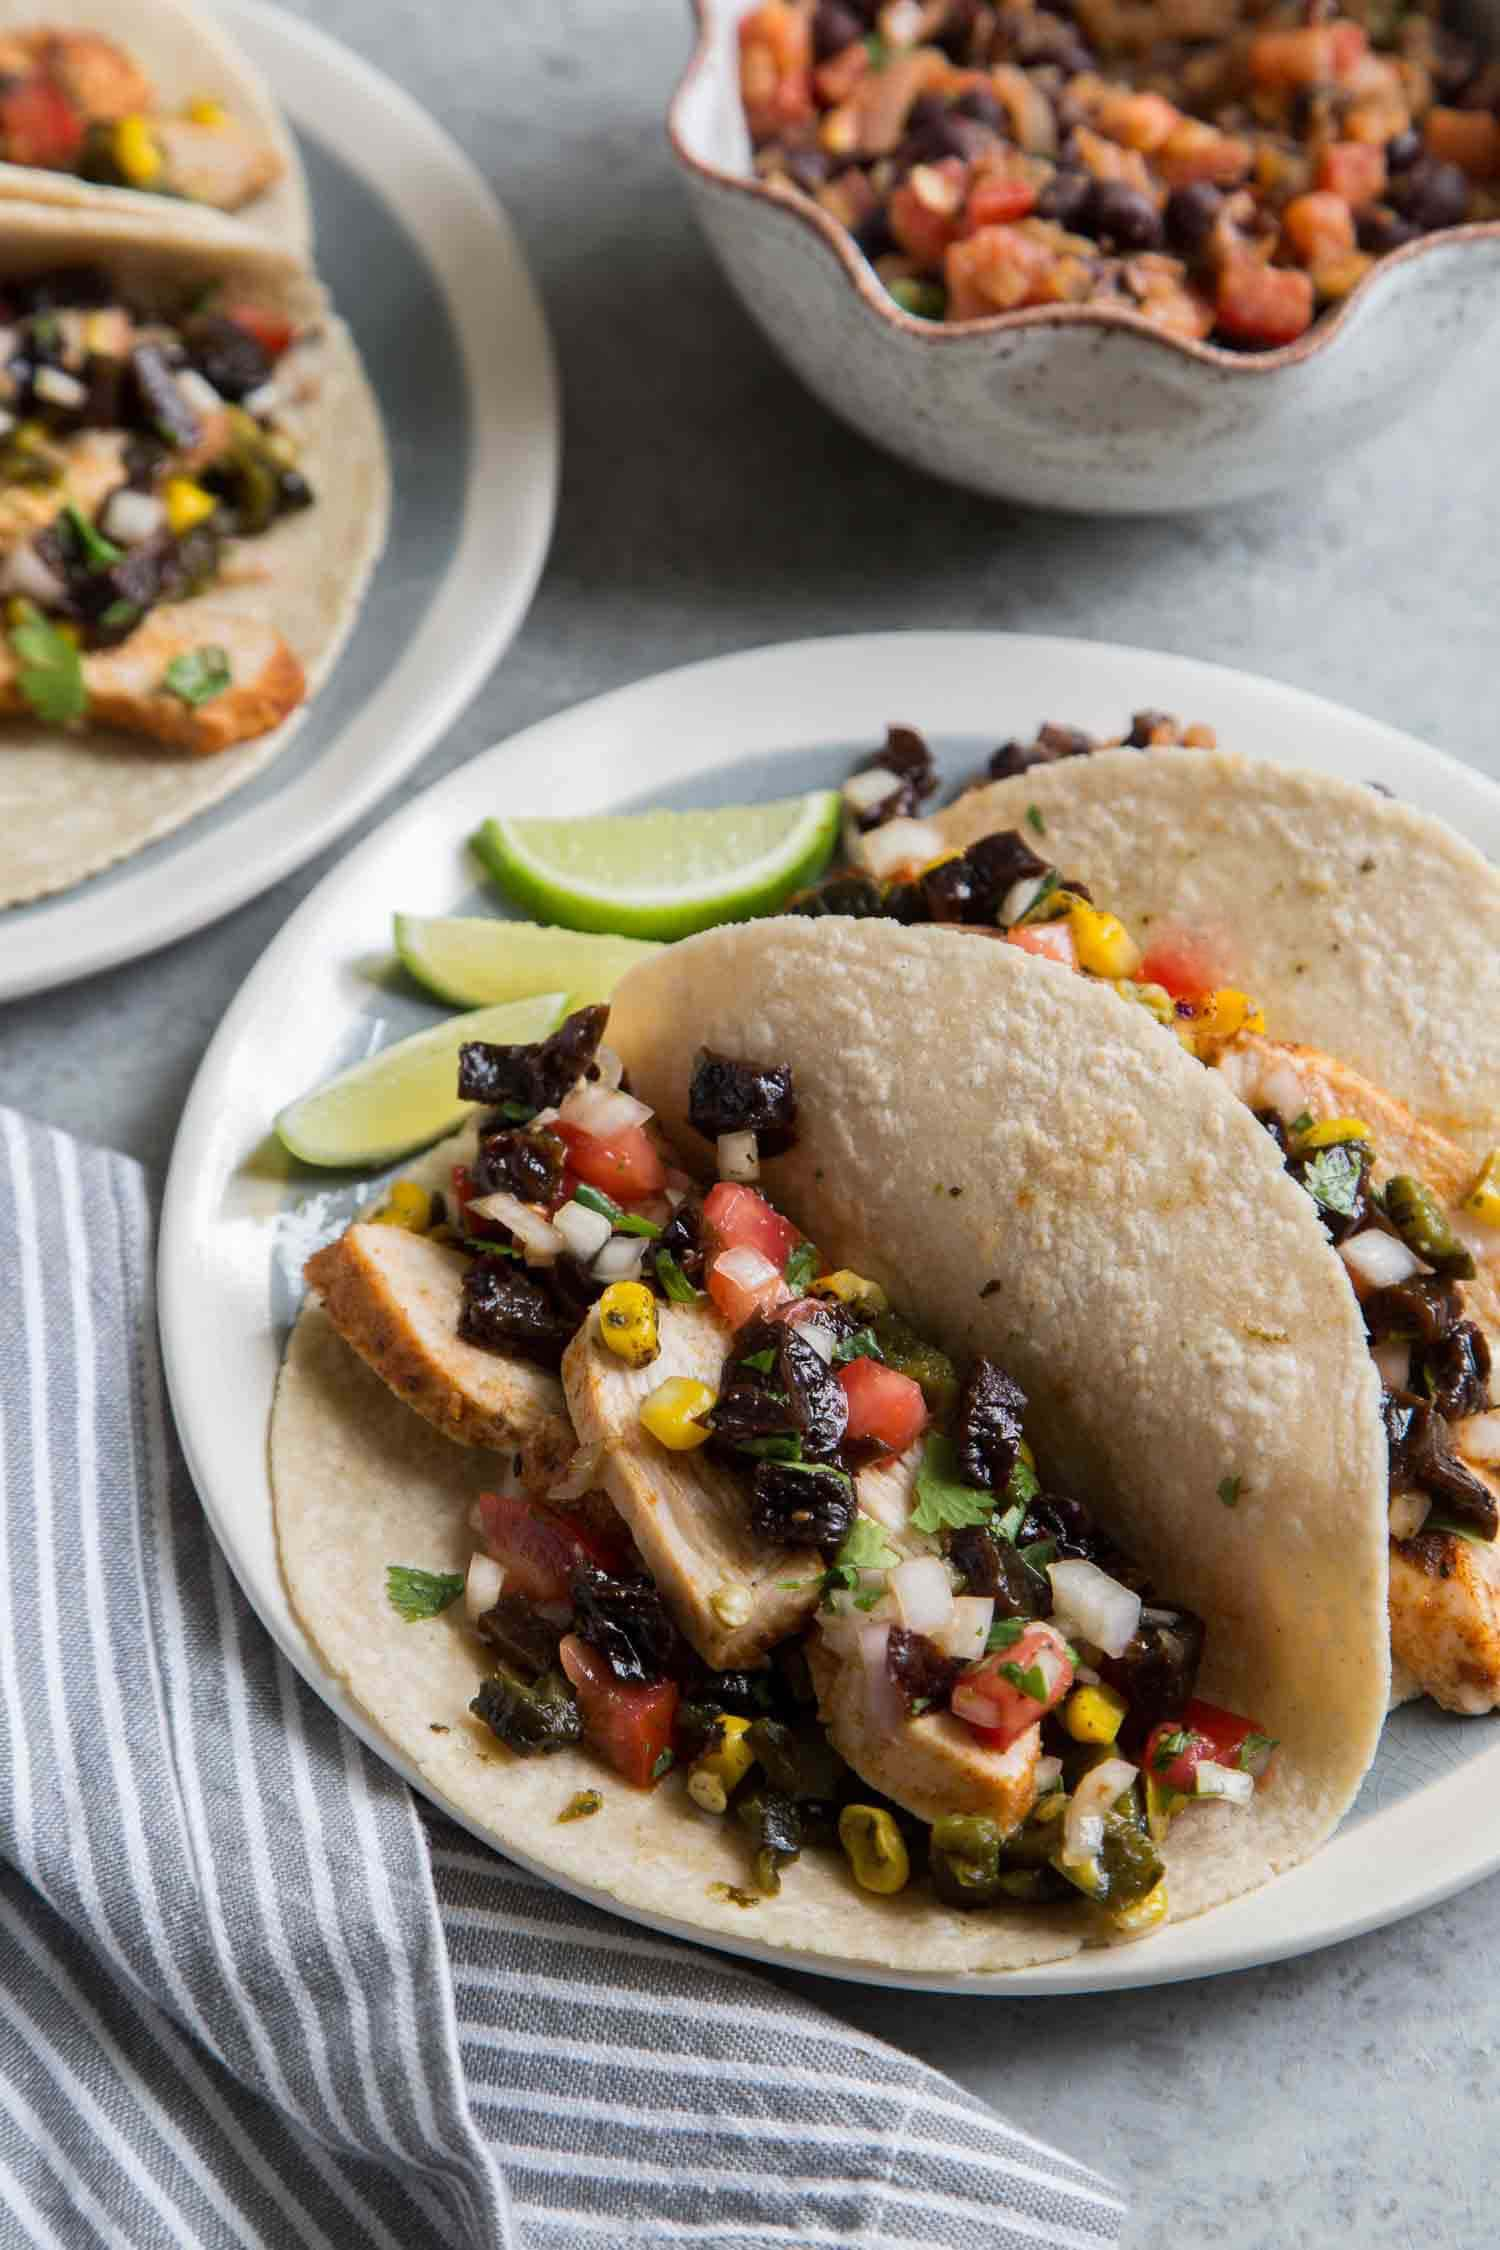 Chicken Tacos with California Prunes Salsa and Refried Black Beans